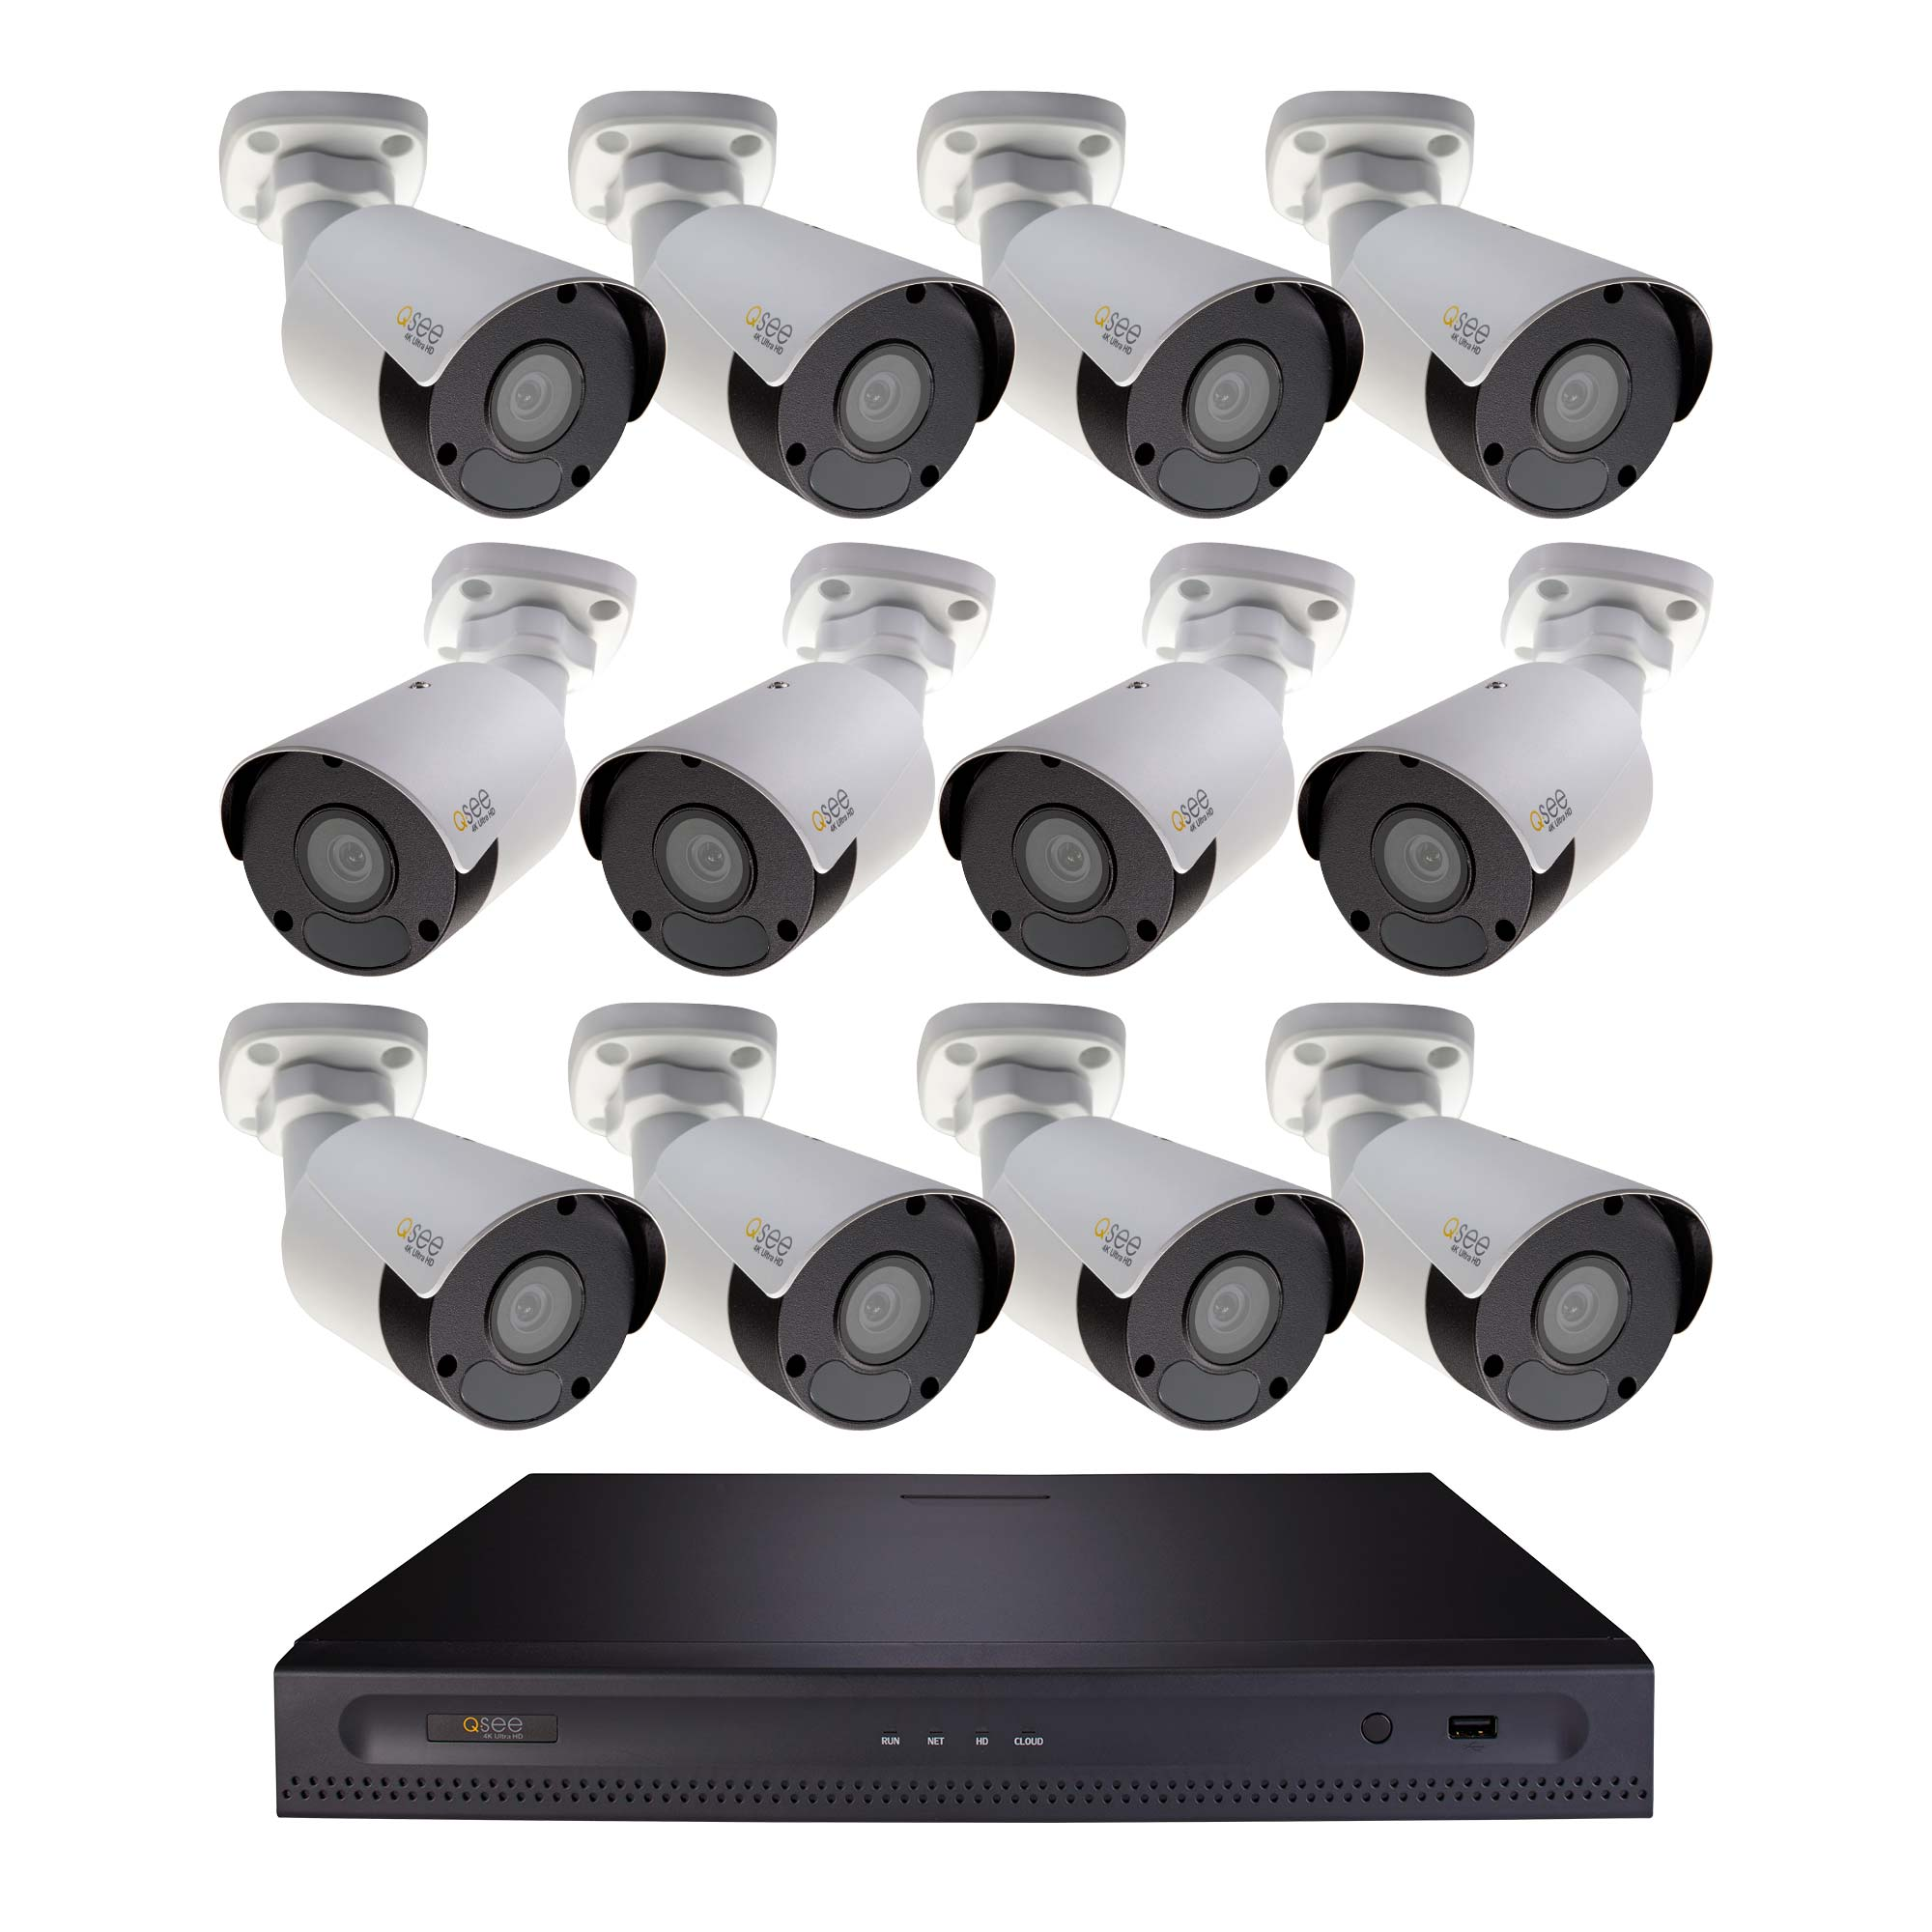 Q-See 16 Channel 4K Ultra HD NVR with 4TB HDD and 12x 4K IP HD Bullet Cameras (H164K1.12)